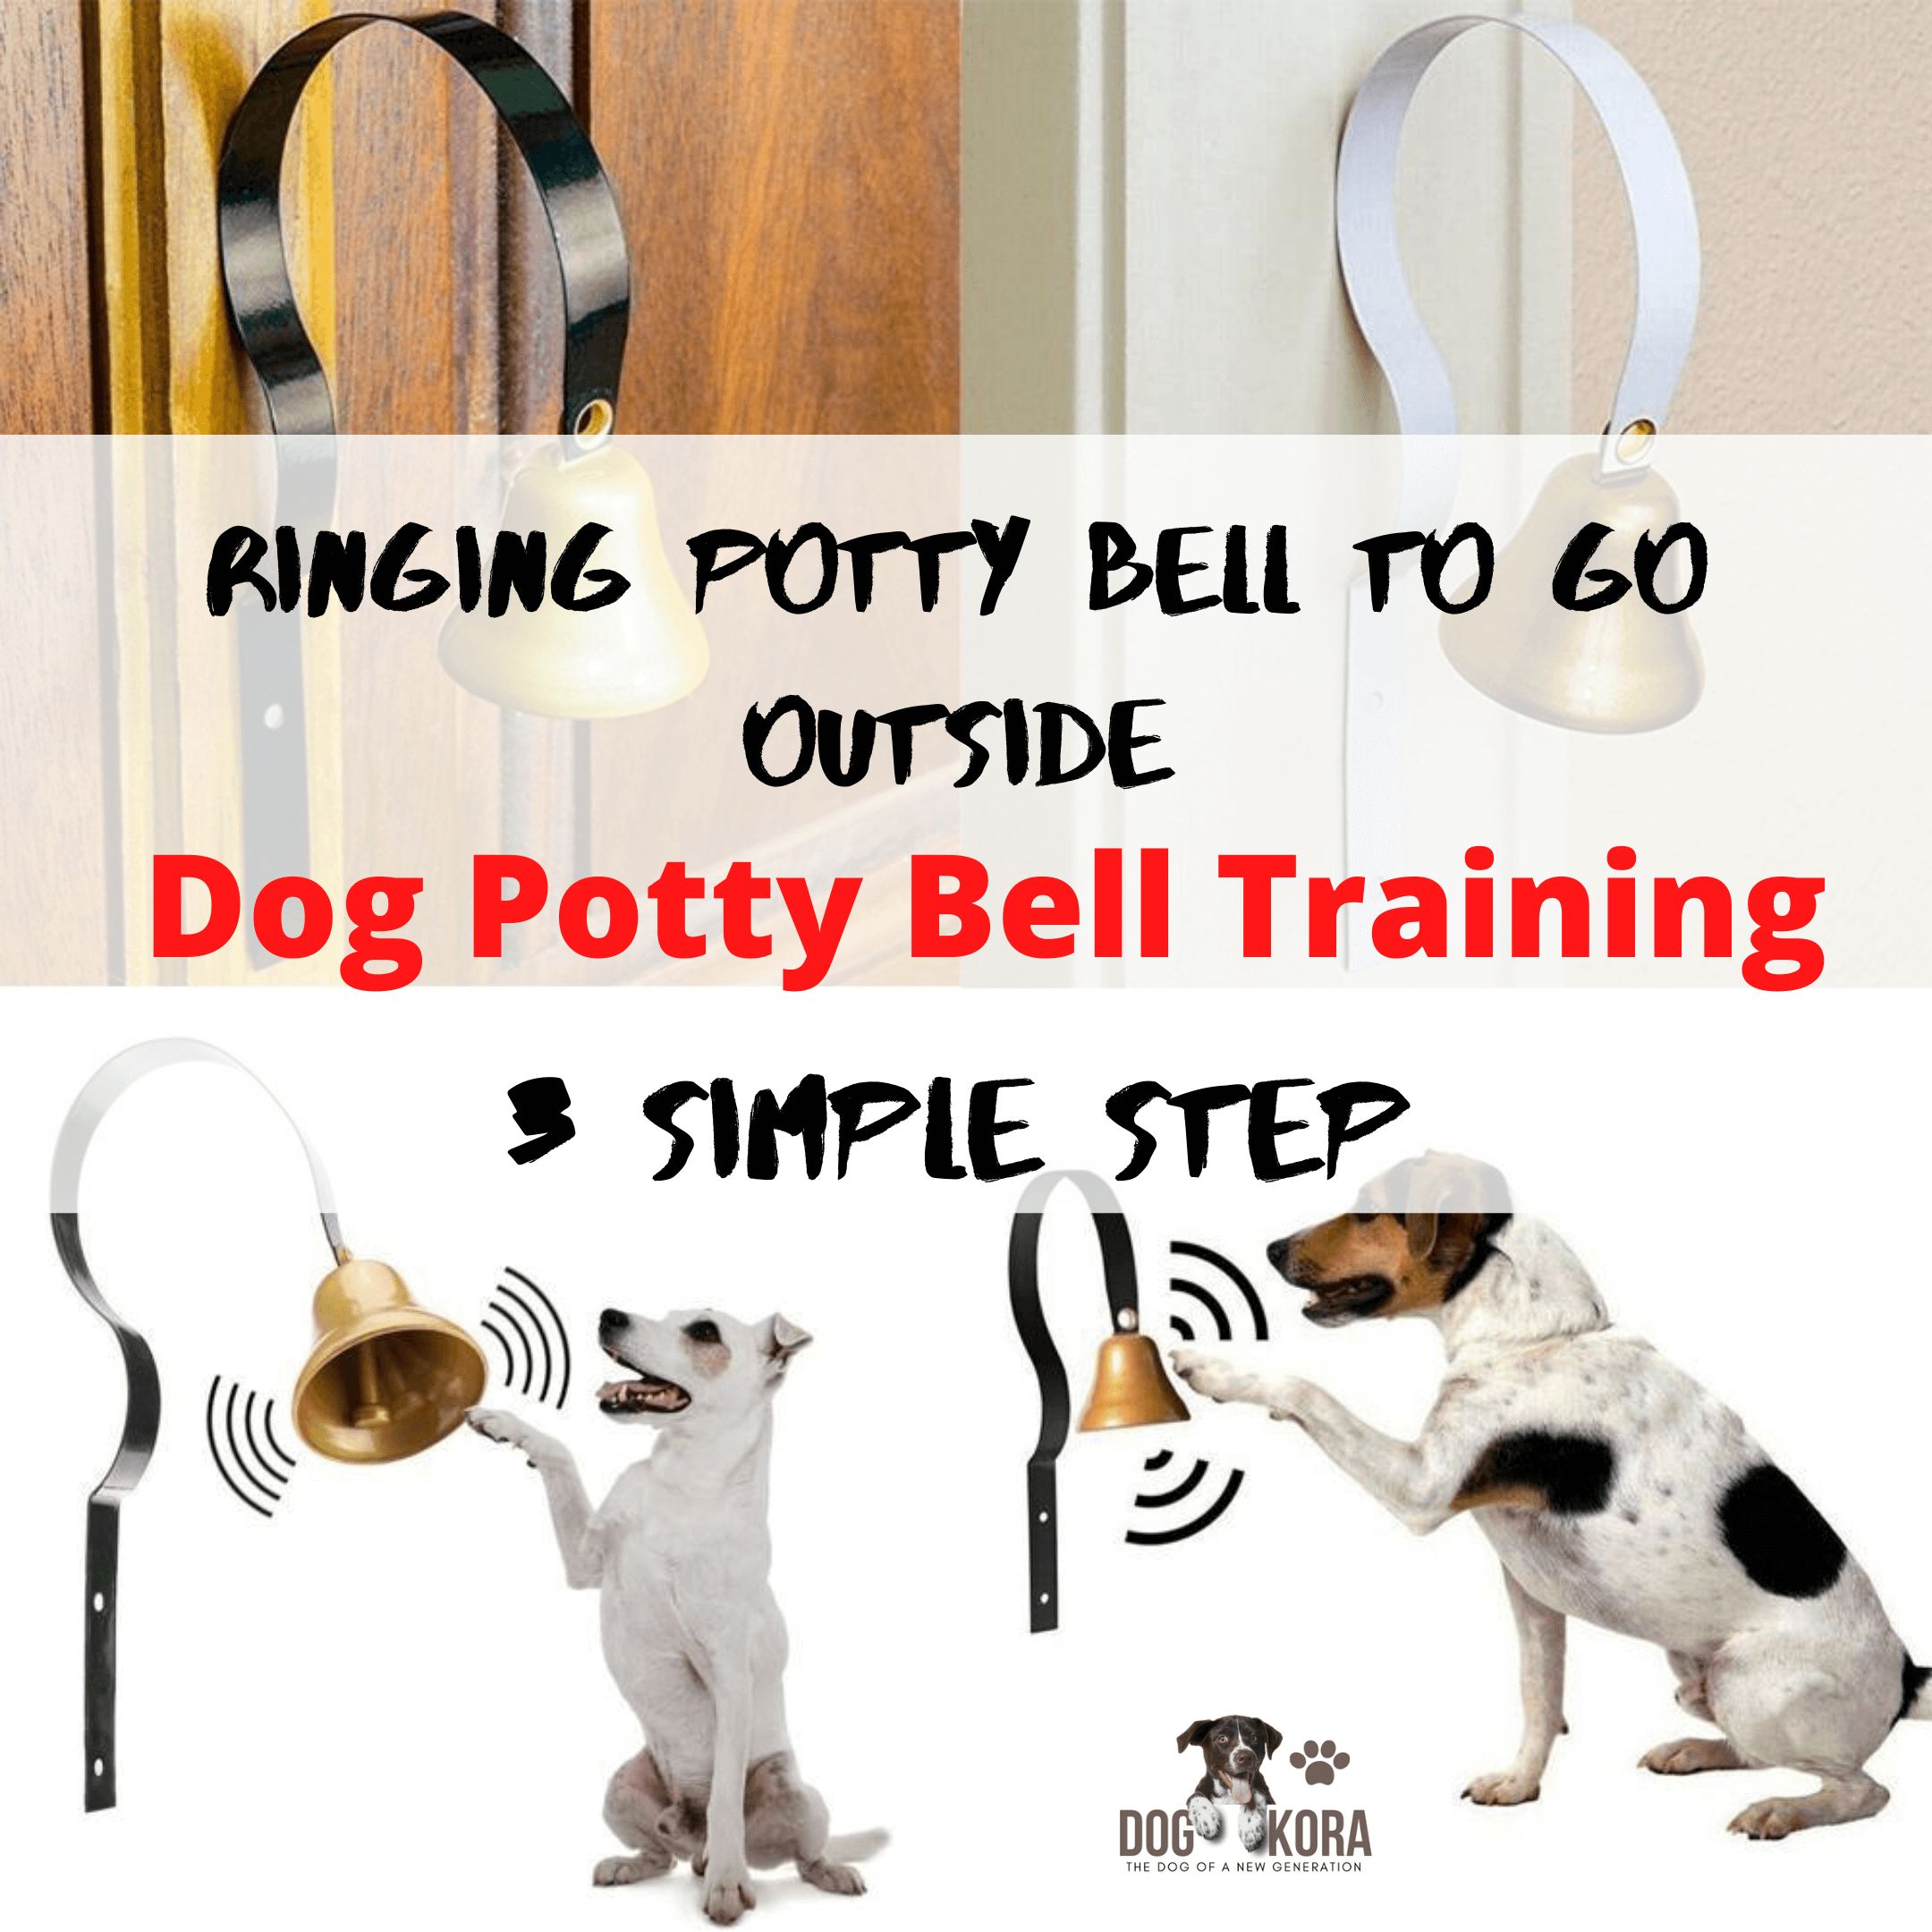 Dog Potty Bell Training